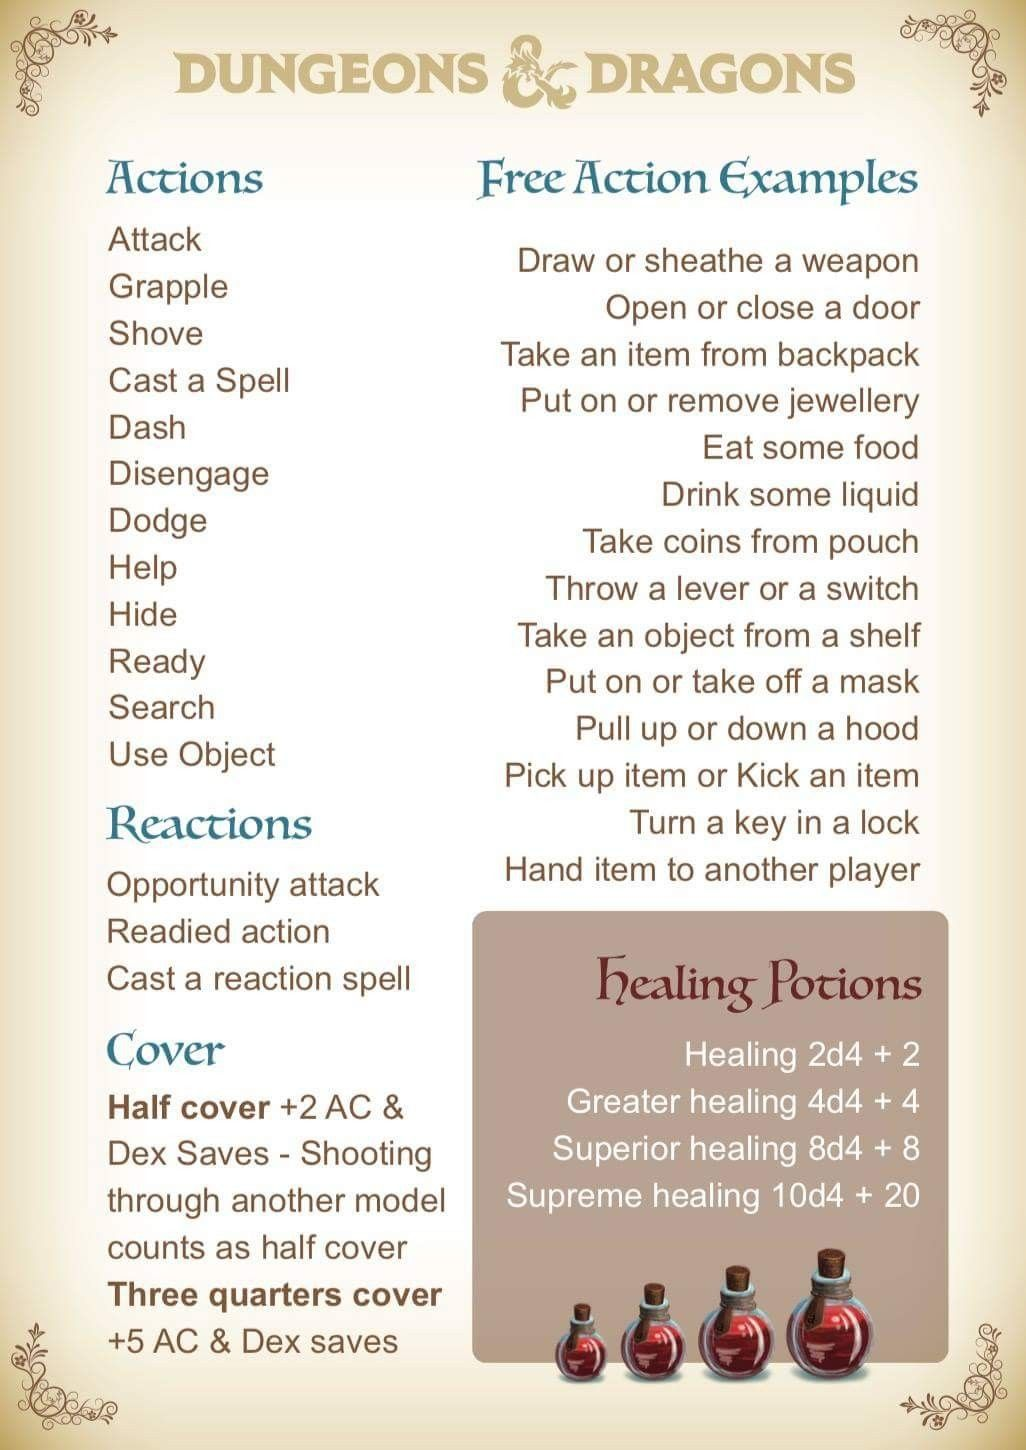 Pin By Chris Knipe On Game Dungeons And Dragons Homebrew Dungeon D D Dungeons And Dragons